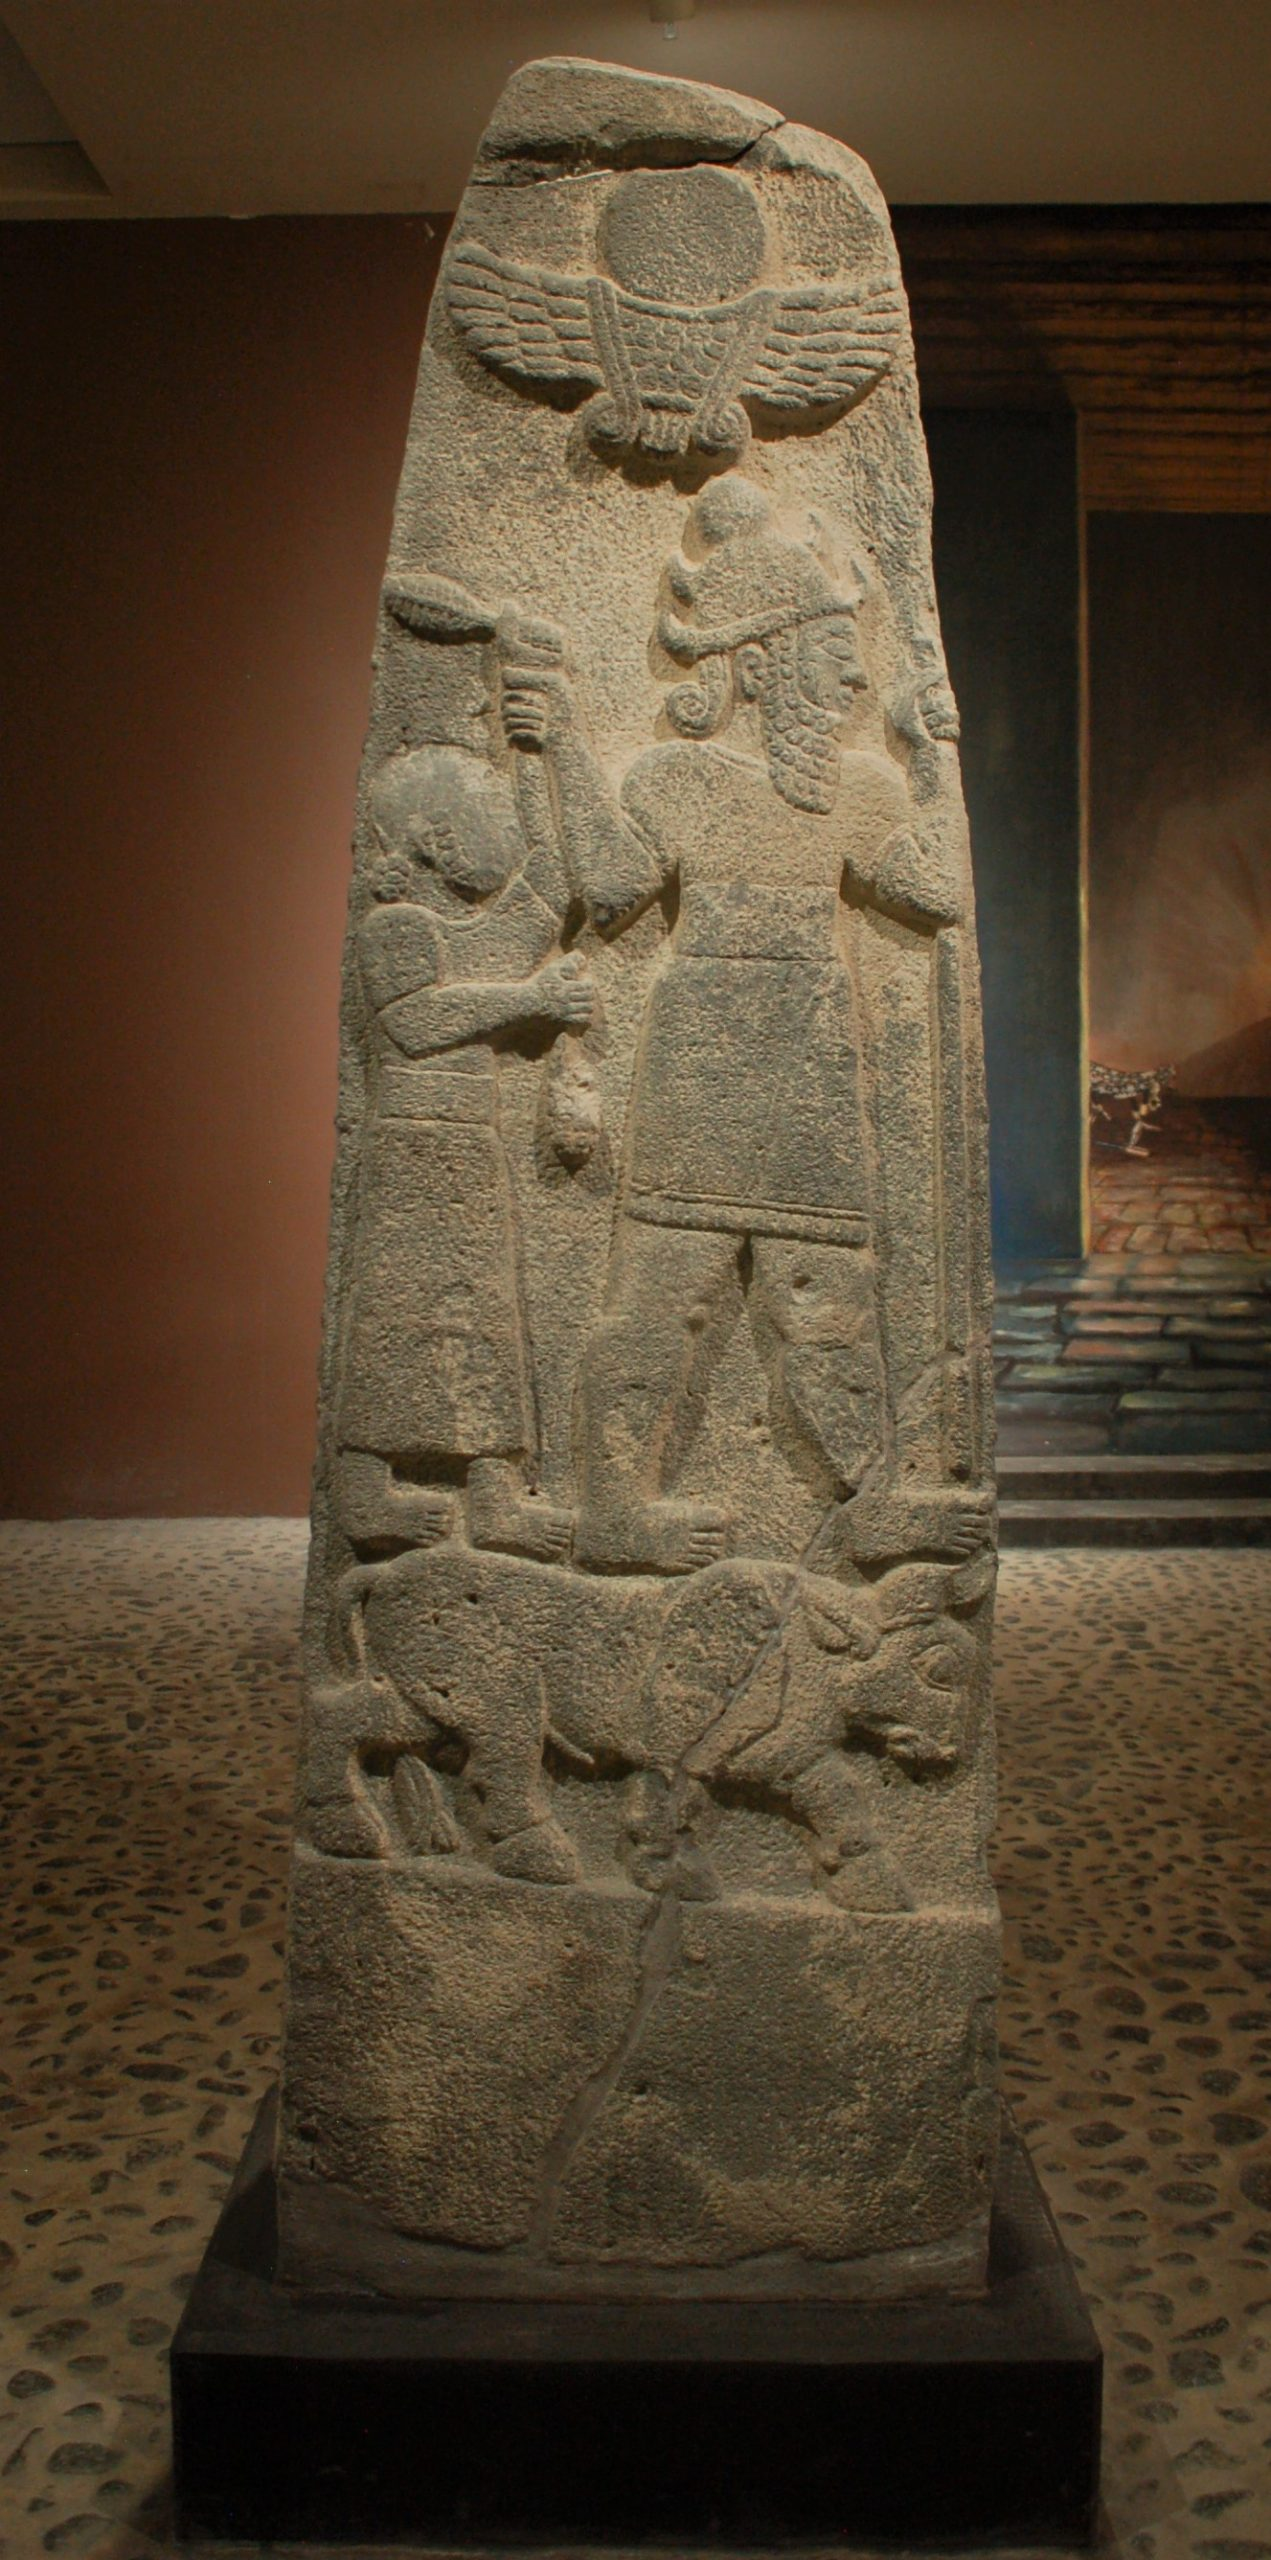 An ancient Stele made of Stone.